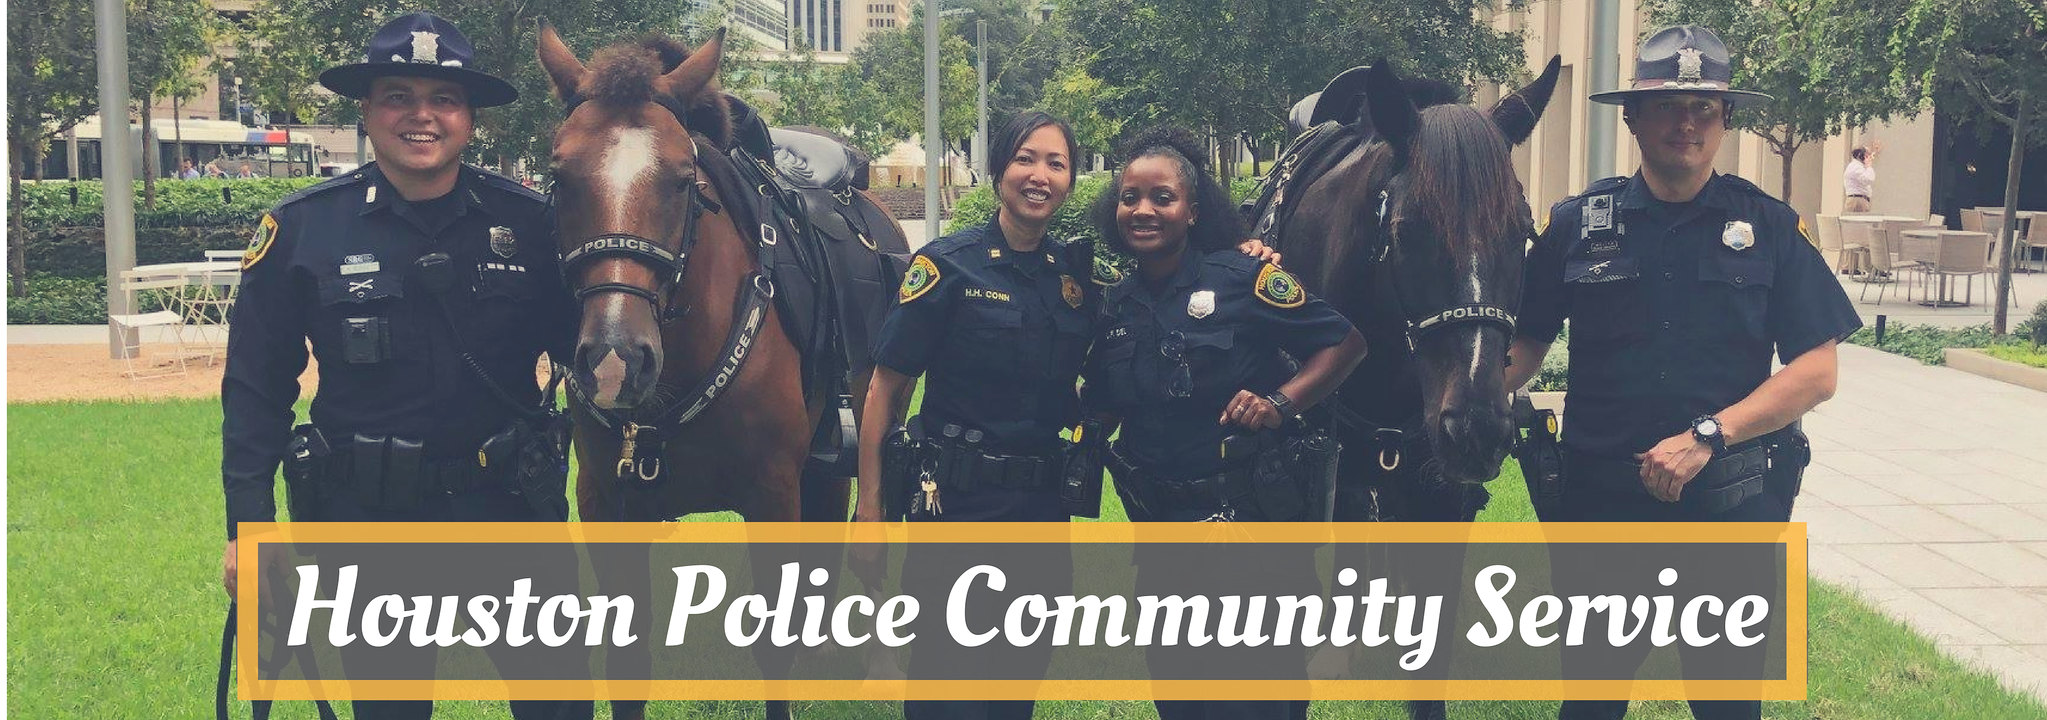 Houston Police Community Blog